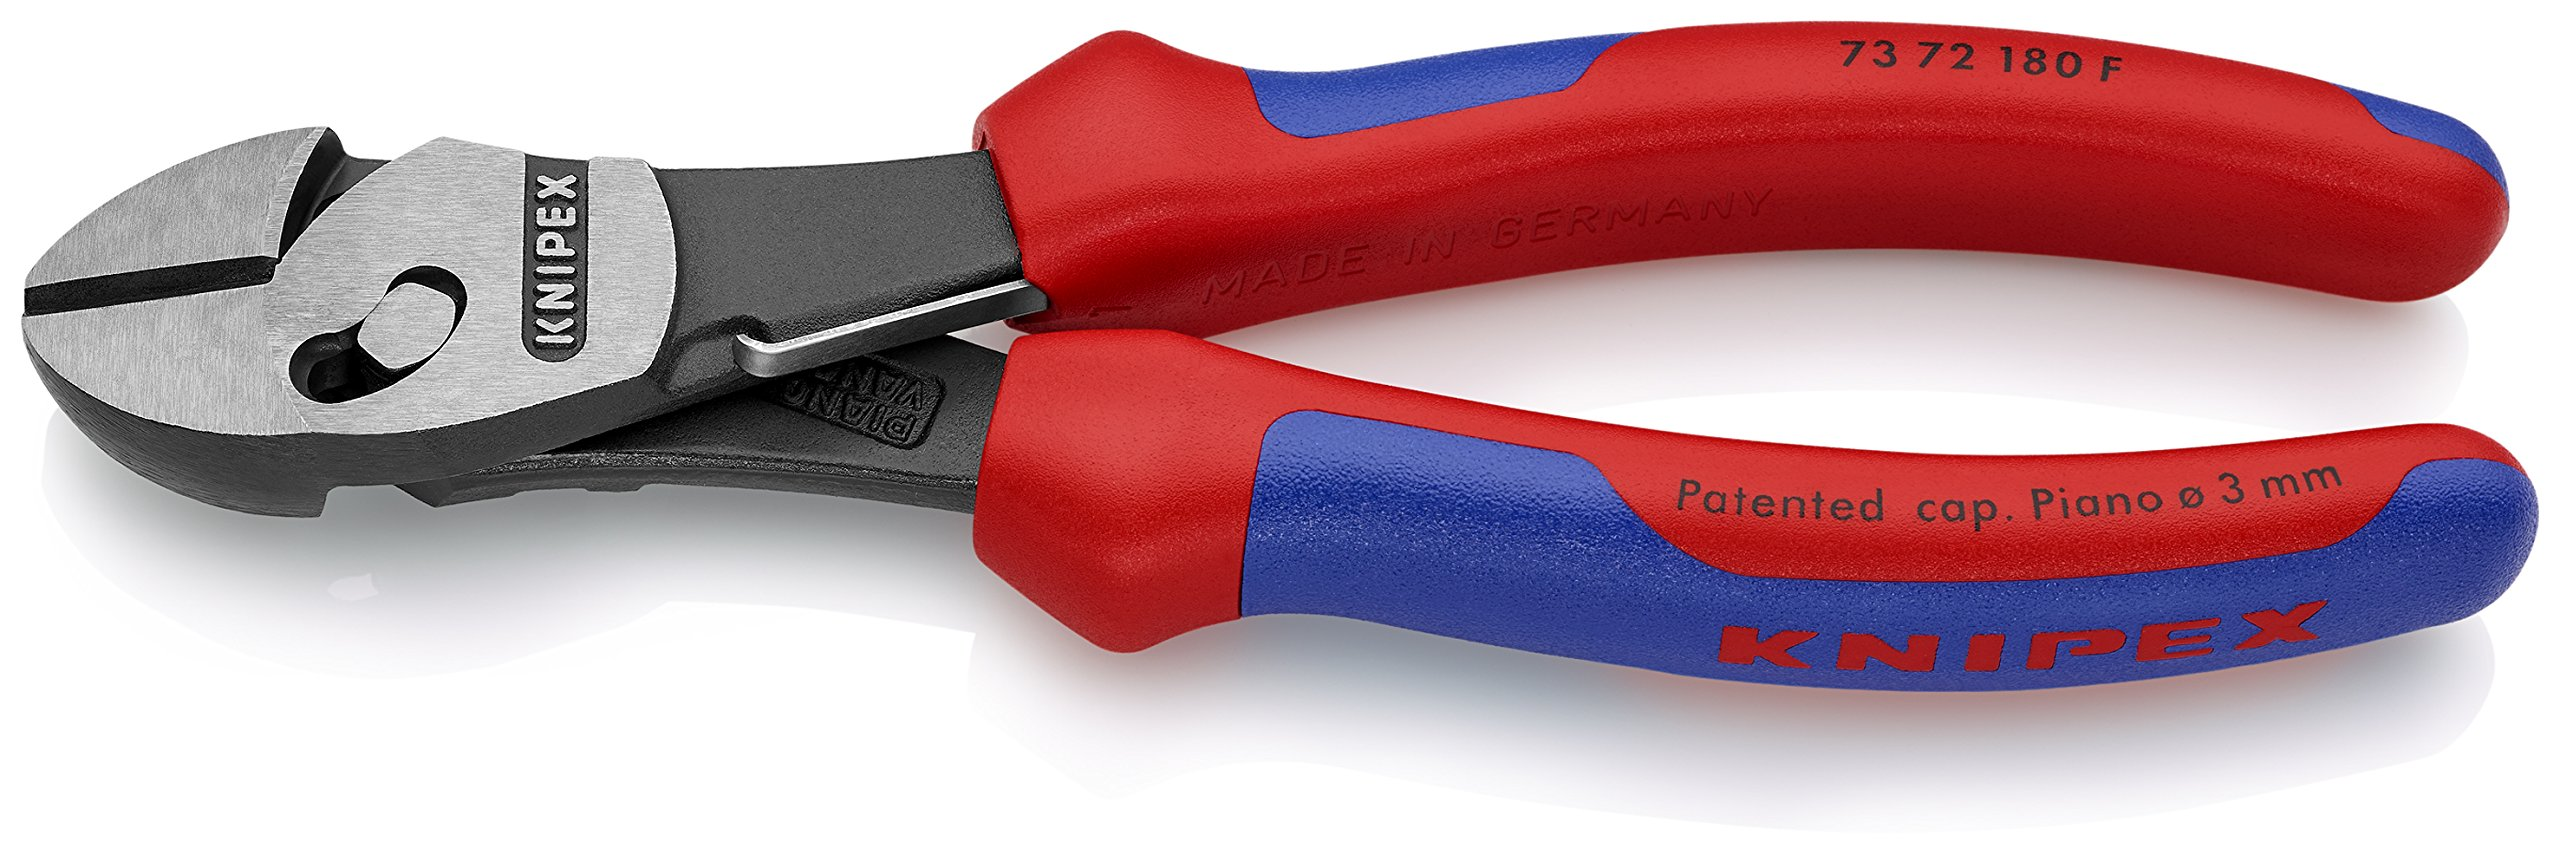 73 72 180 F High Performance Diagonal Cutters ''Twinforce'' with Soft Handle & Opening Spring